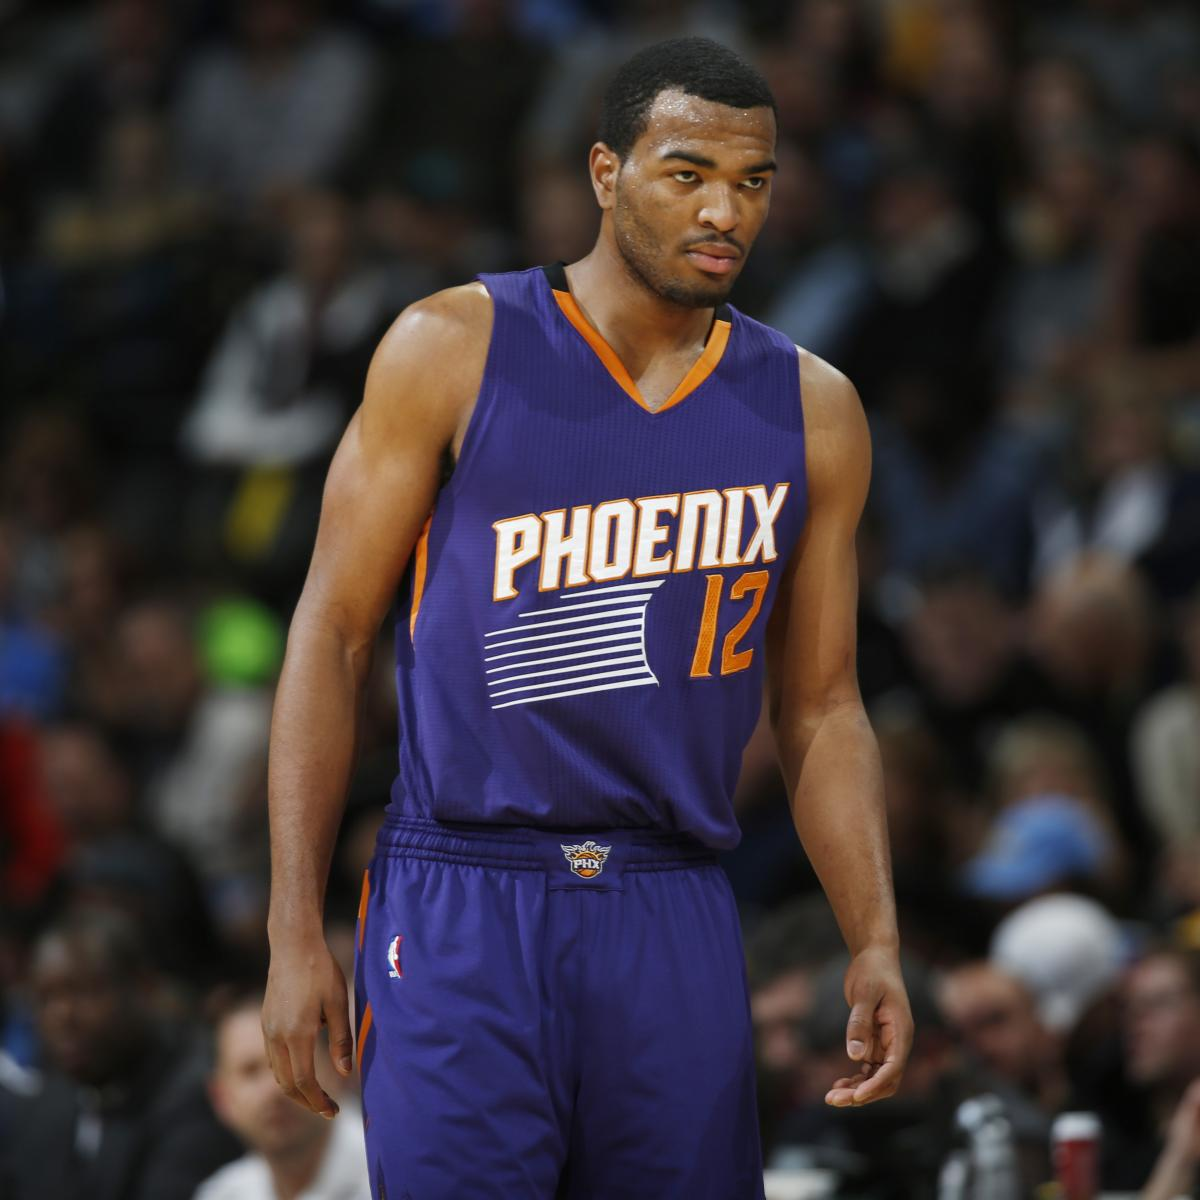 Blazers Kanter Contract: TJ Warren, Suns Reportedly Agree To 4-Year, $50 Million